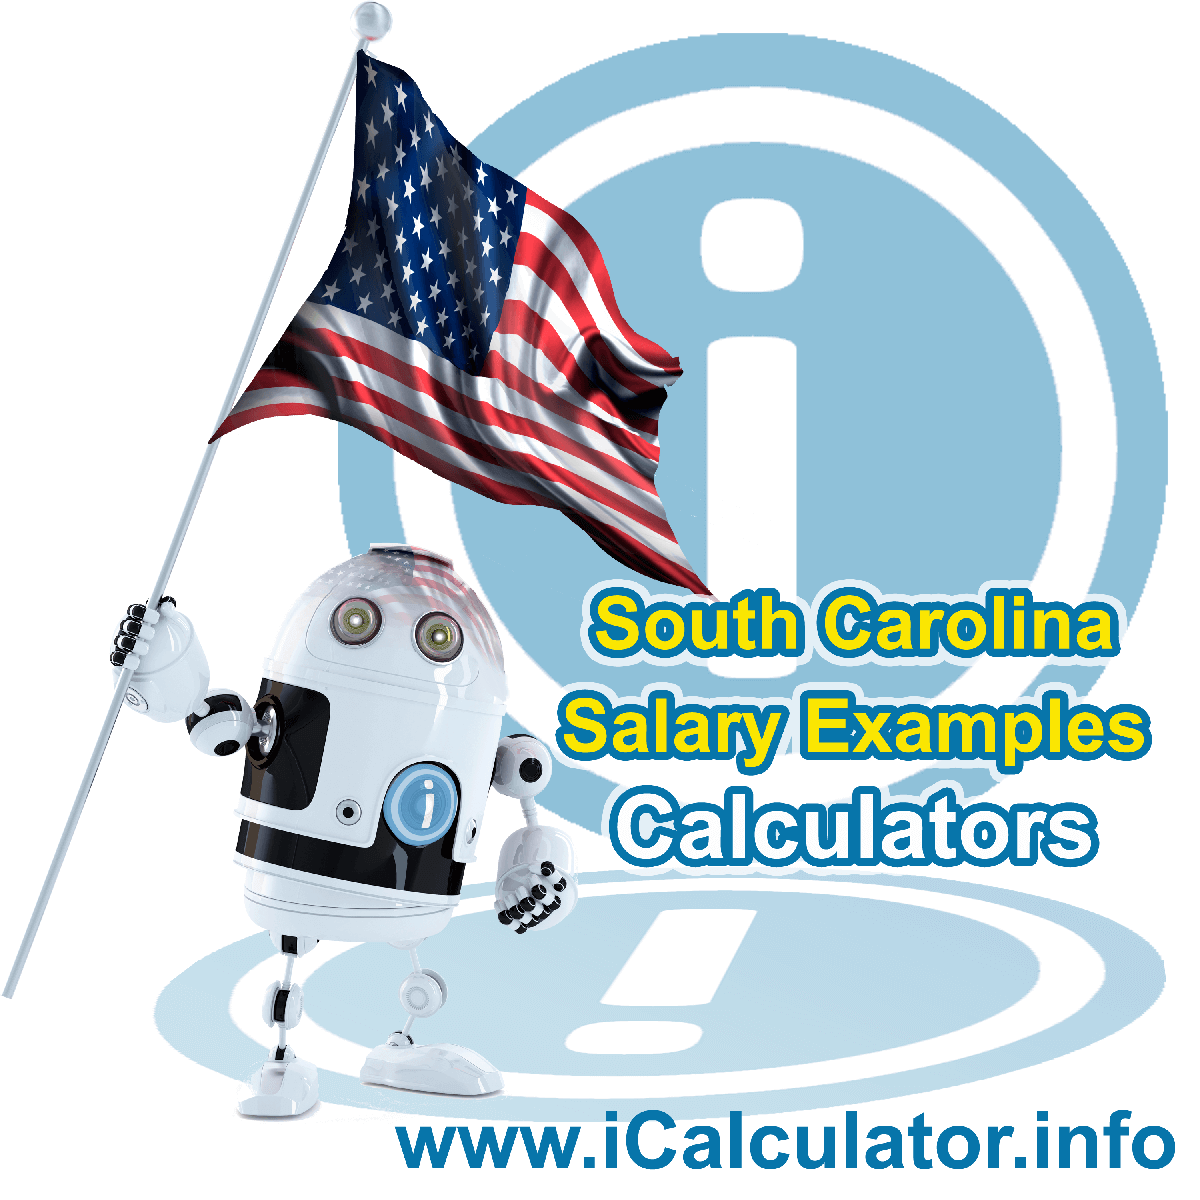 South Carolina Salary Example for $210.00 in 2020 | iCalculator | $210.00 salary example for employee and employer paying South Carolina State tincome taxes. Detailed salary after tax calculation including South Carolina State Tax, Federal State Tax, Medicare Deductions, Social Security, Capital Gains and other income tax and salary deductions complete with supporting South Carolina state tax tables